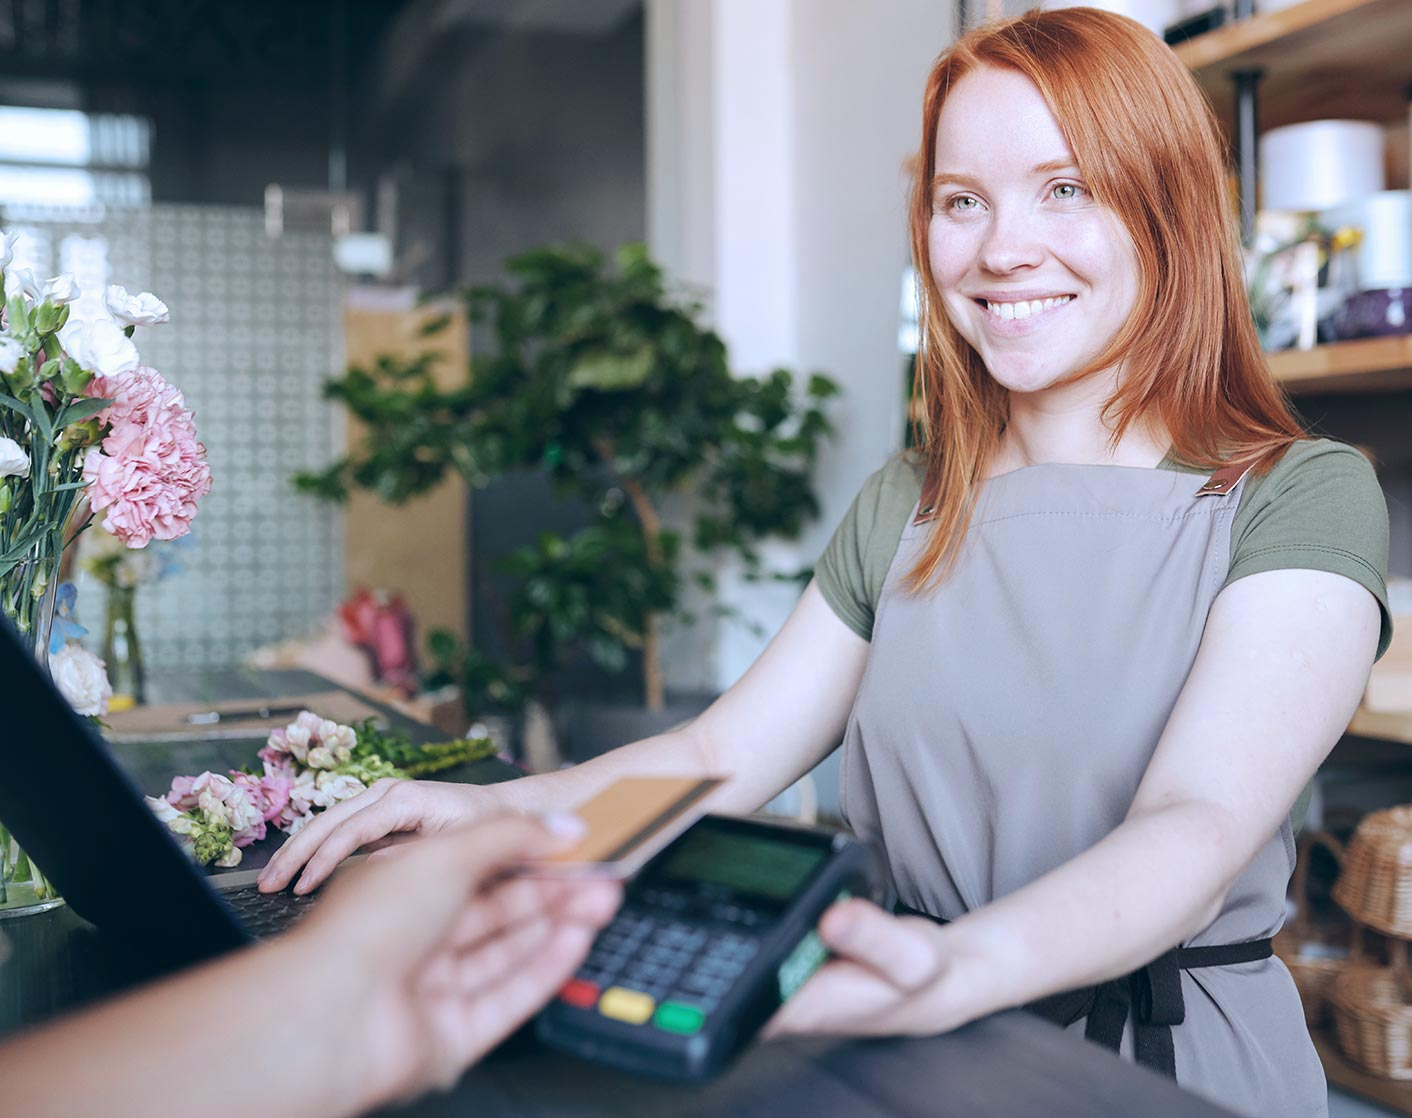 female redheaded store clerk passing debit pin pad to customer in foreground